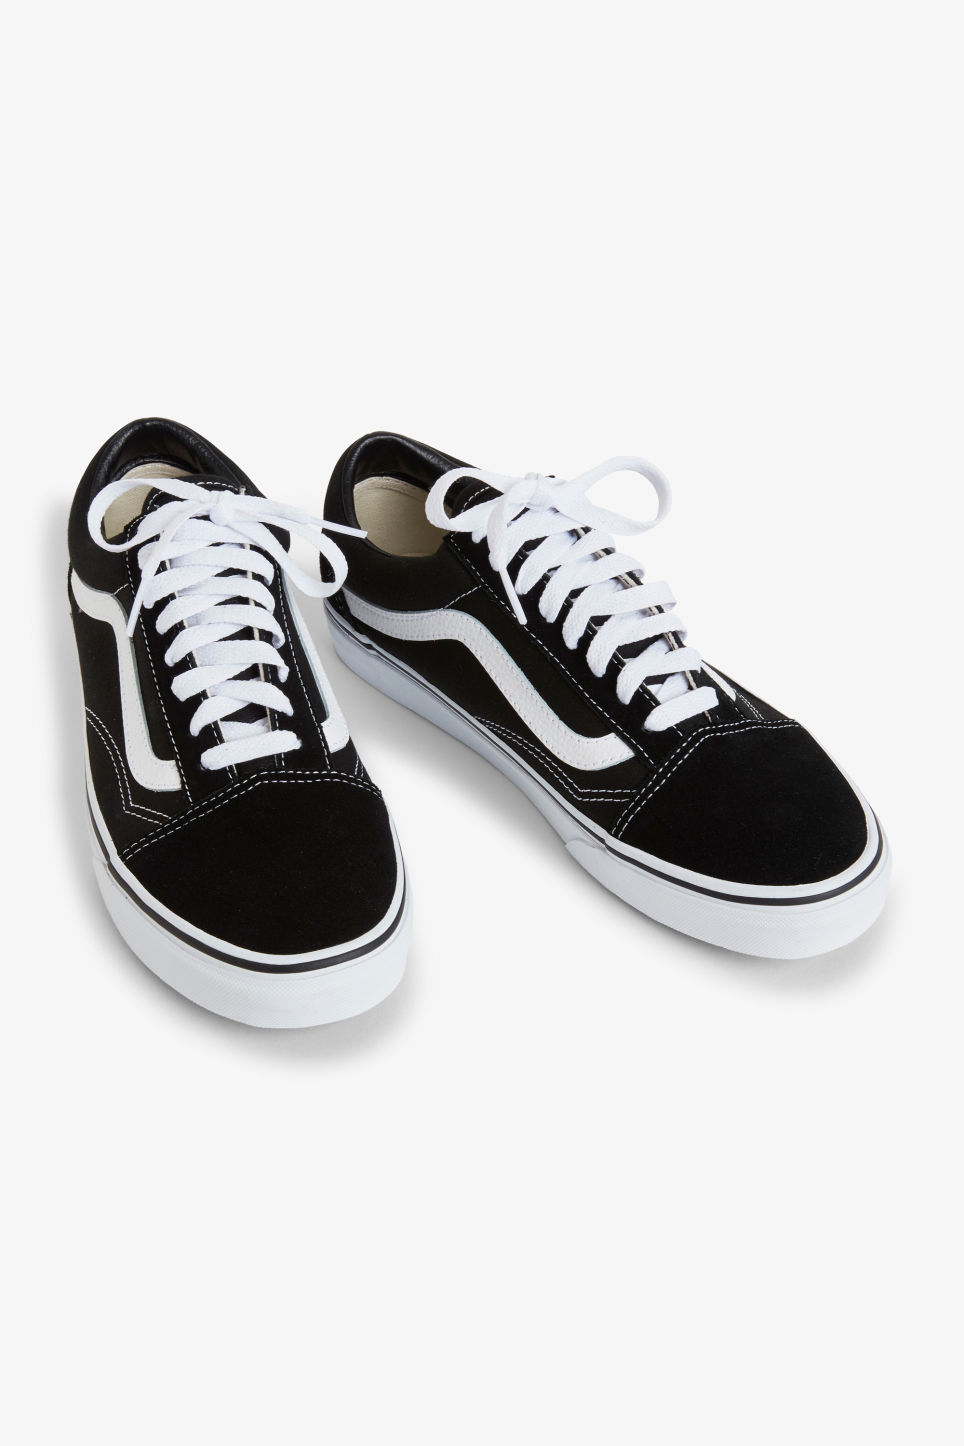 c0afedf32f Vans old skool - Black magic - Shoes - Monki